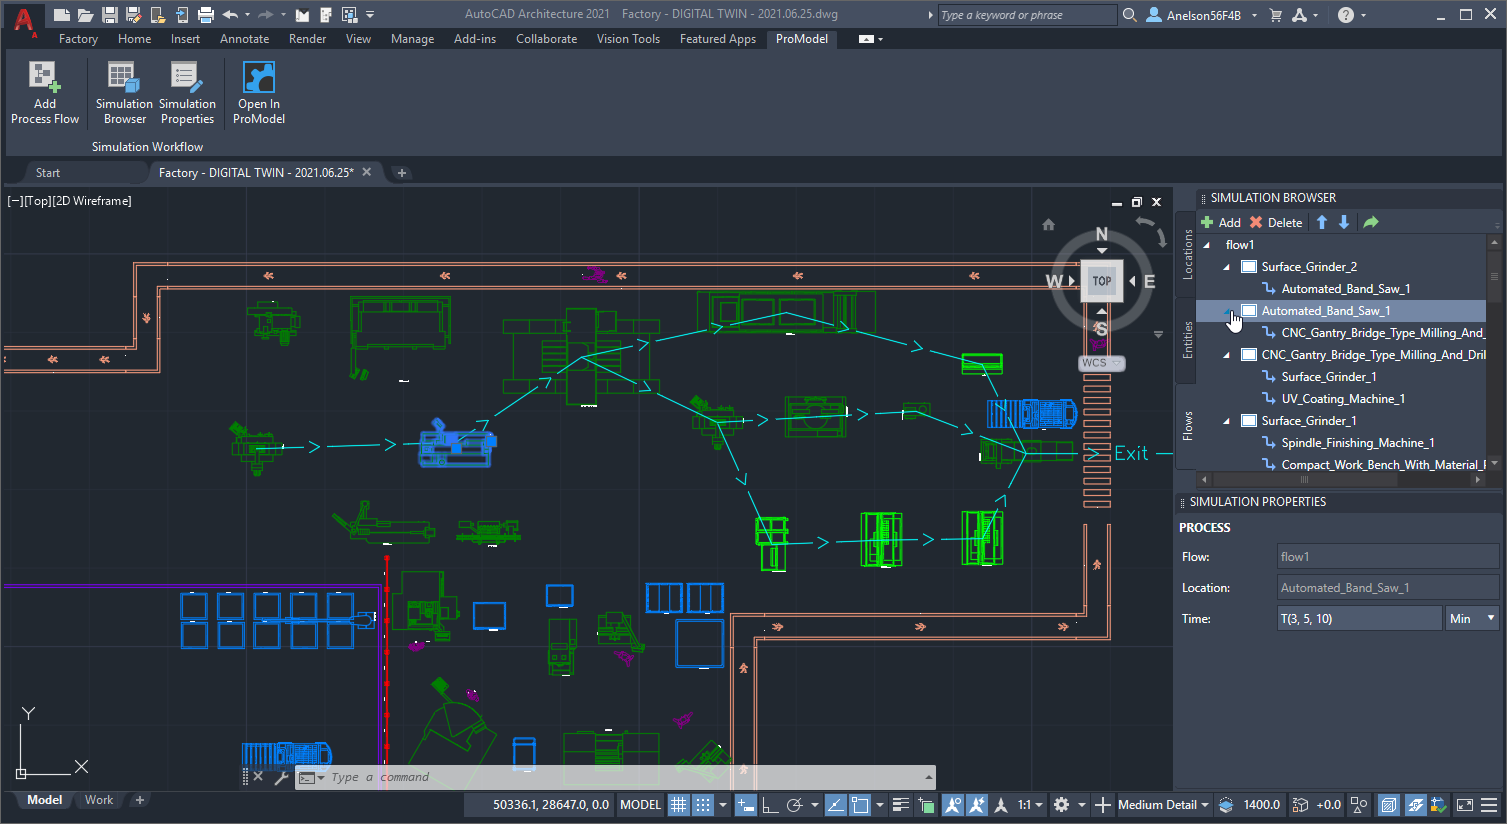 ProModel Layout in AutoCAD